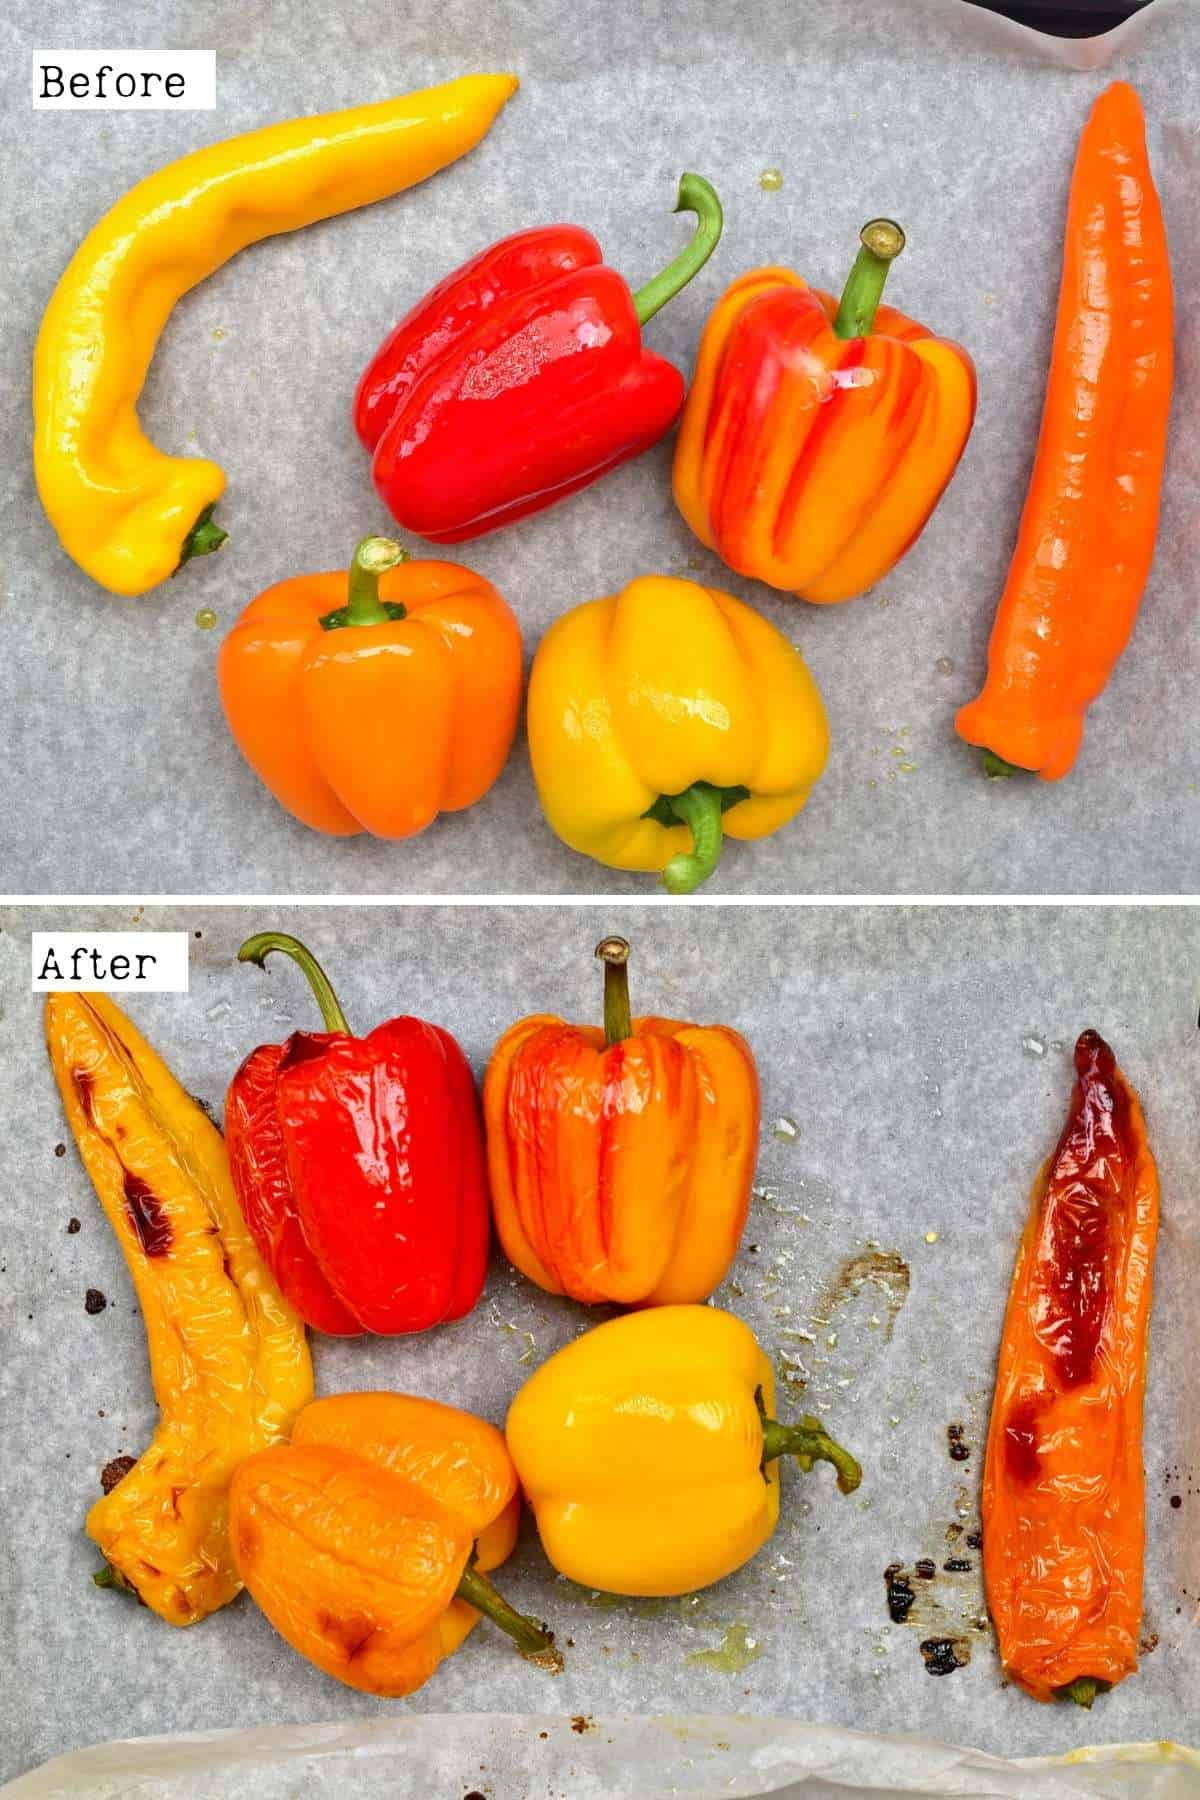 Before and after roasting peppers